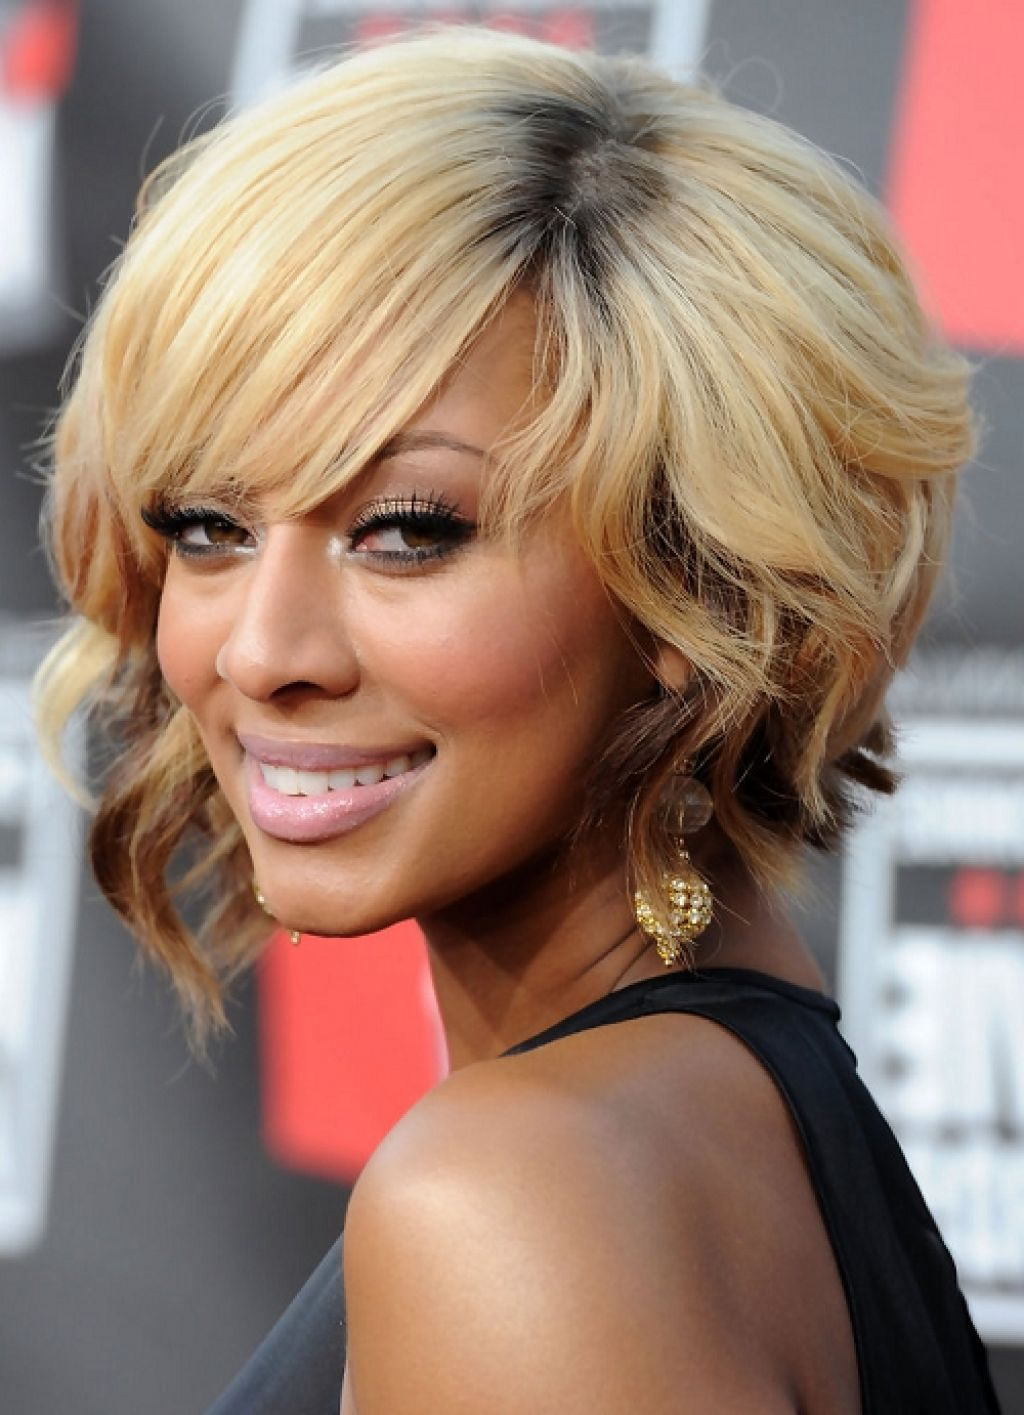 Sensational 5 Hottest Medium Blonde Hairstyles For African American Women Cruckers Hairstyles For Women Draintrainus